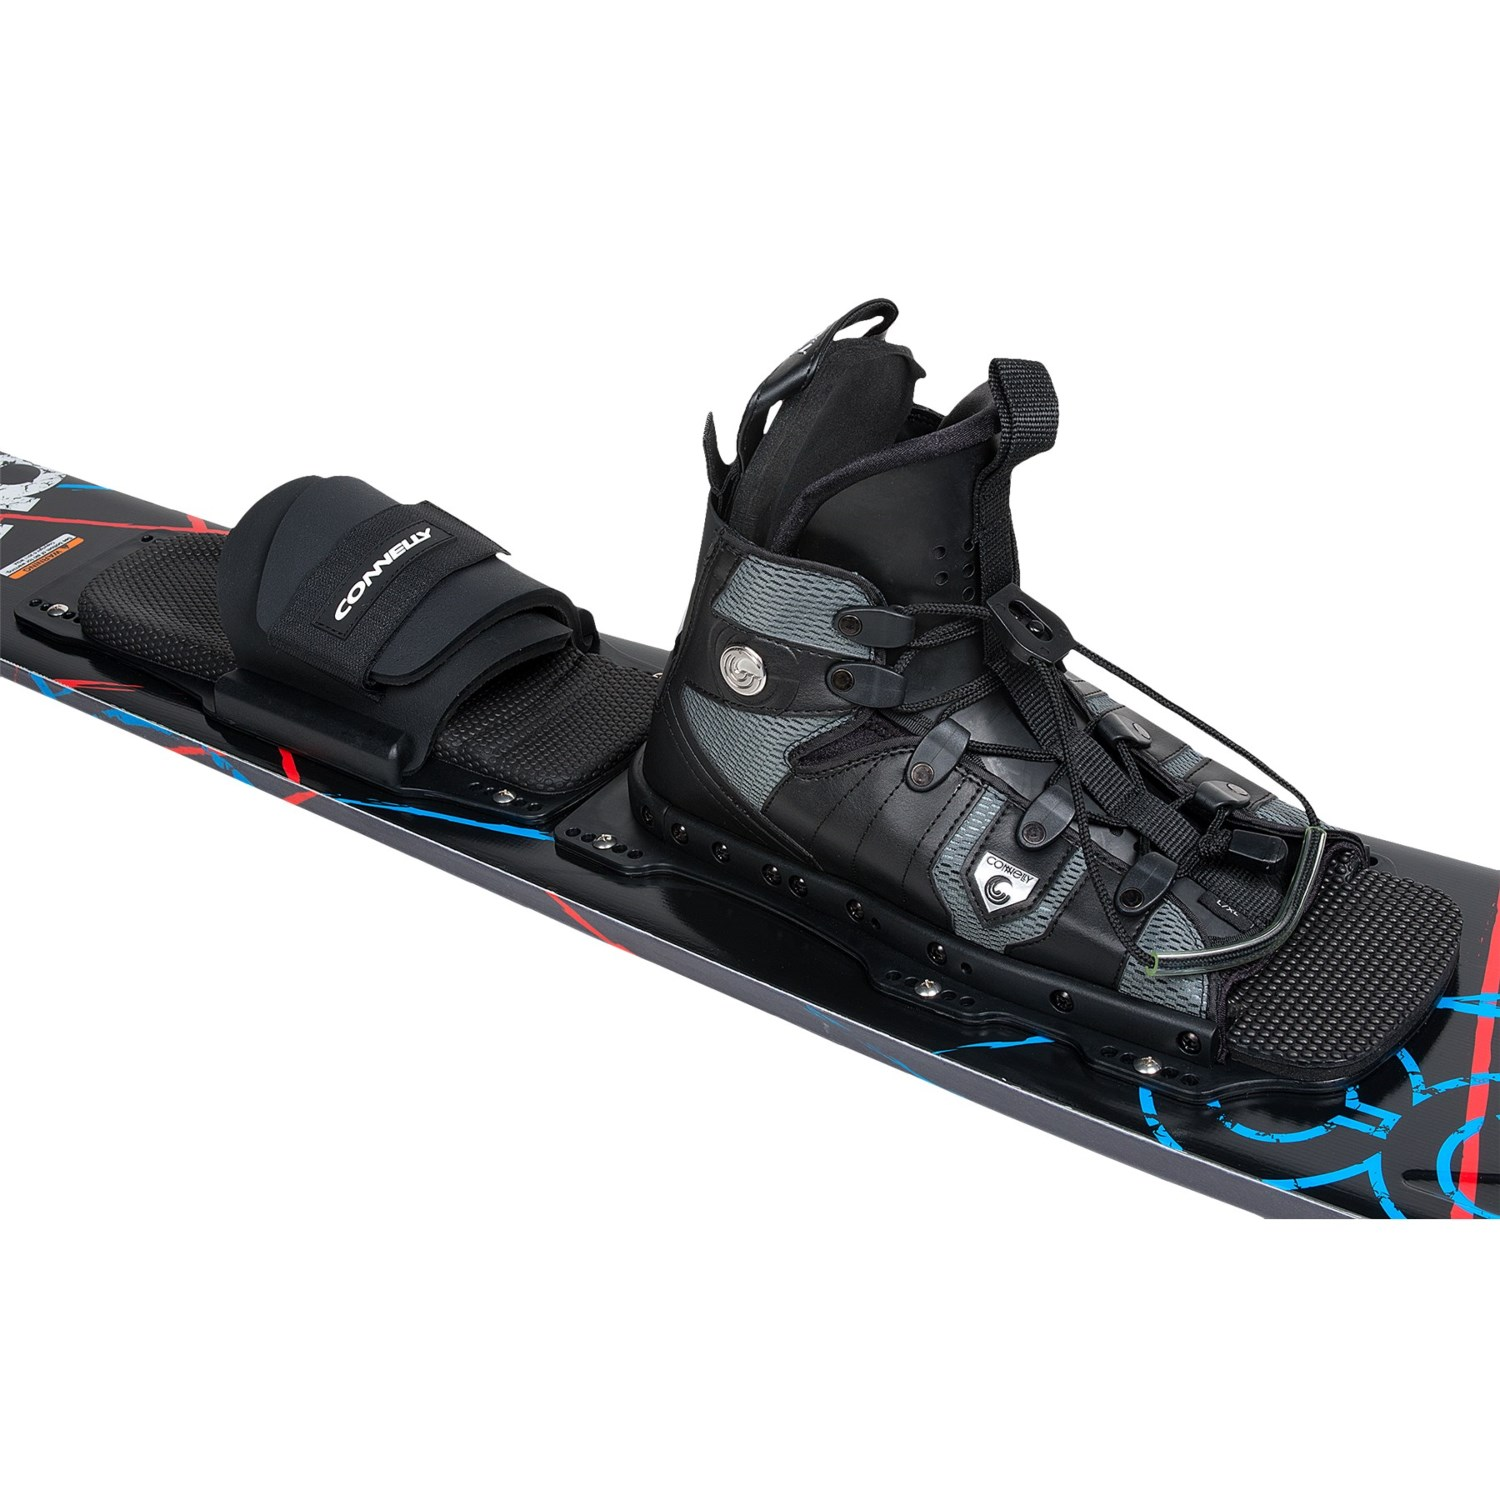 Connelly Outlaw Slalom Water Ski